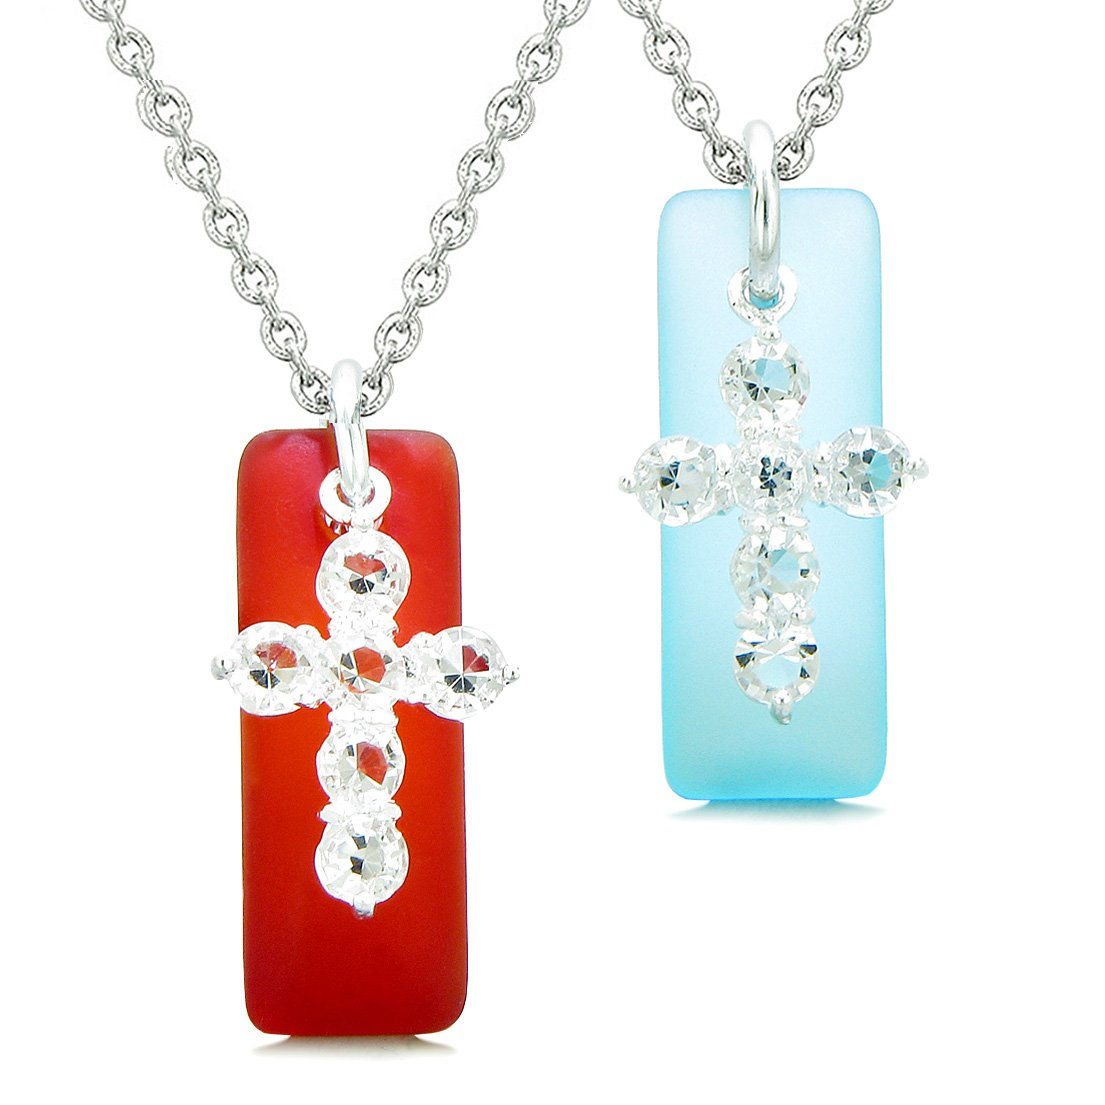 Sea Glass Sky Blue and Royal Red Tags Crystal Cross Love Couples BFF Set Protection Amulet Necklaces